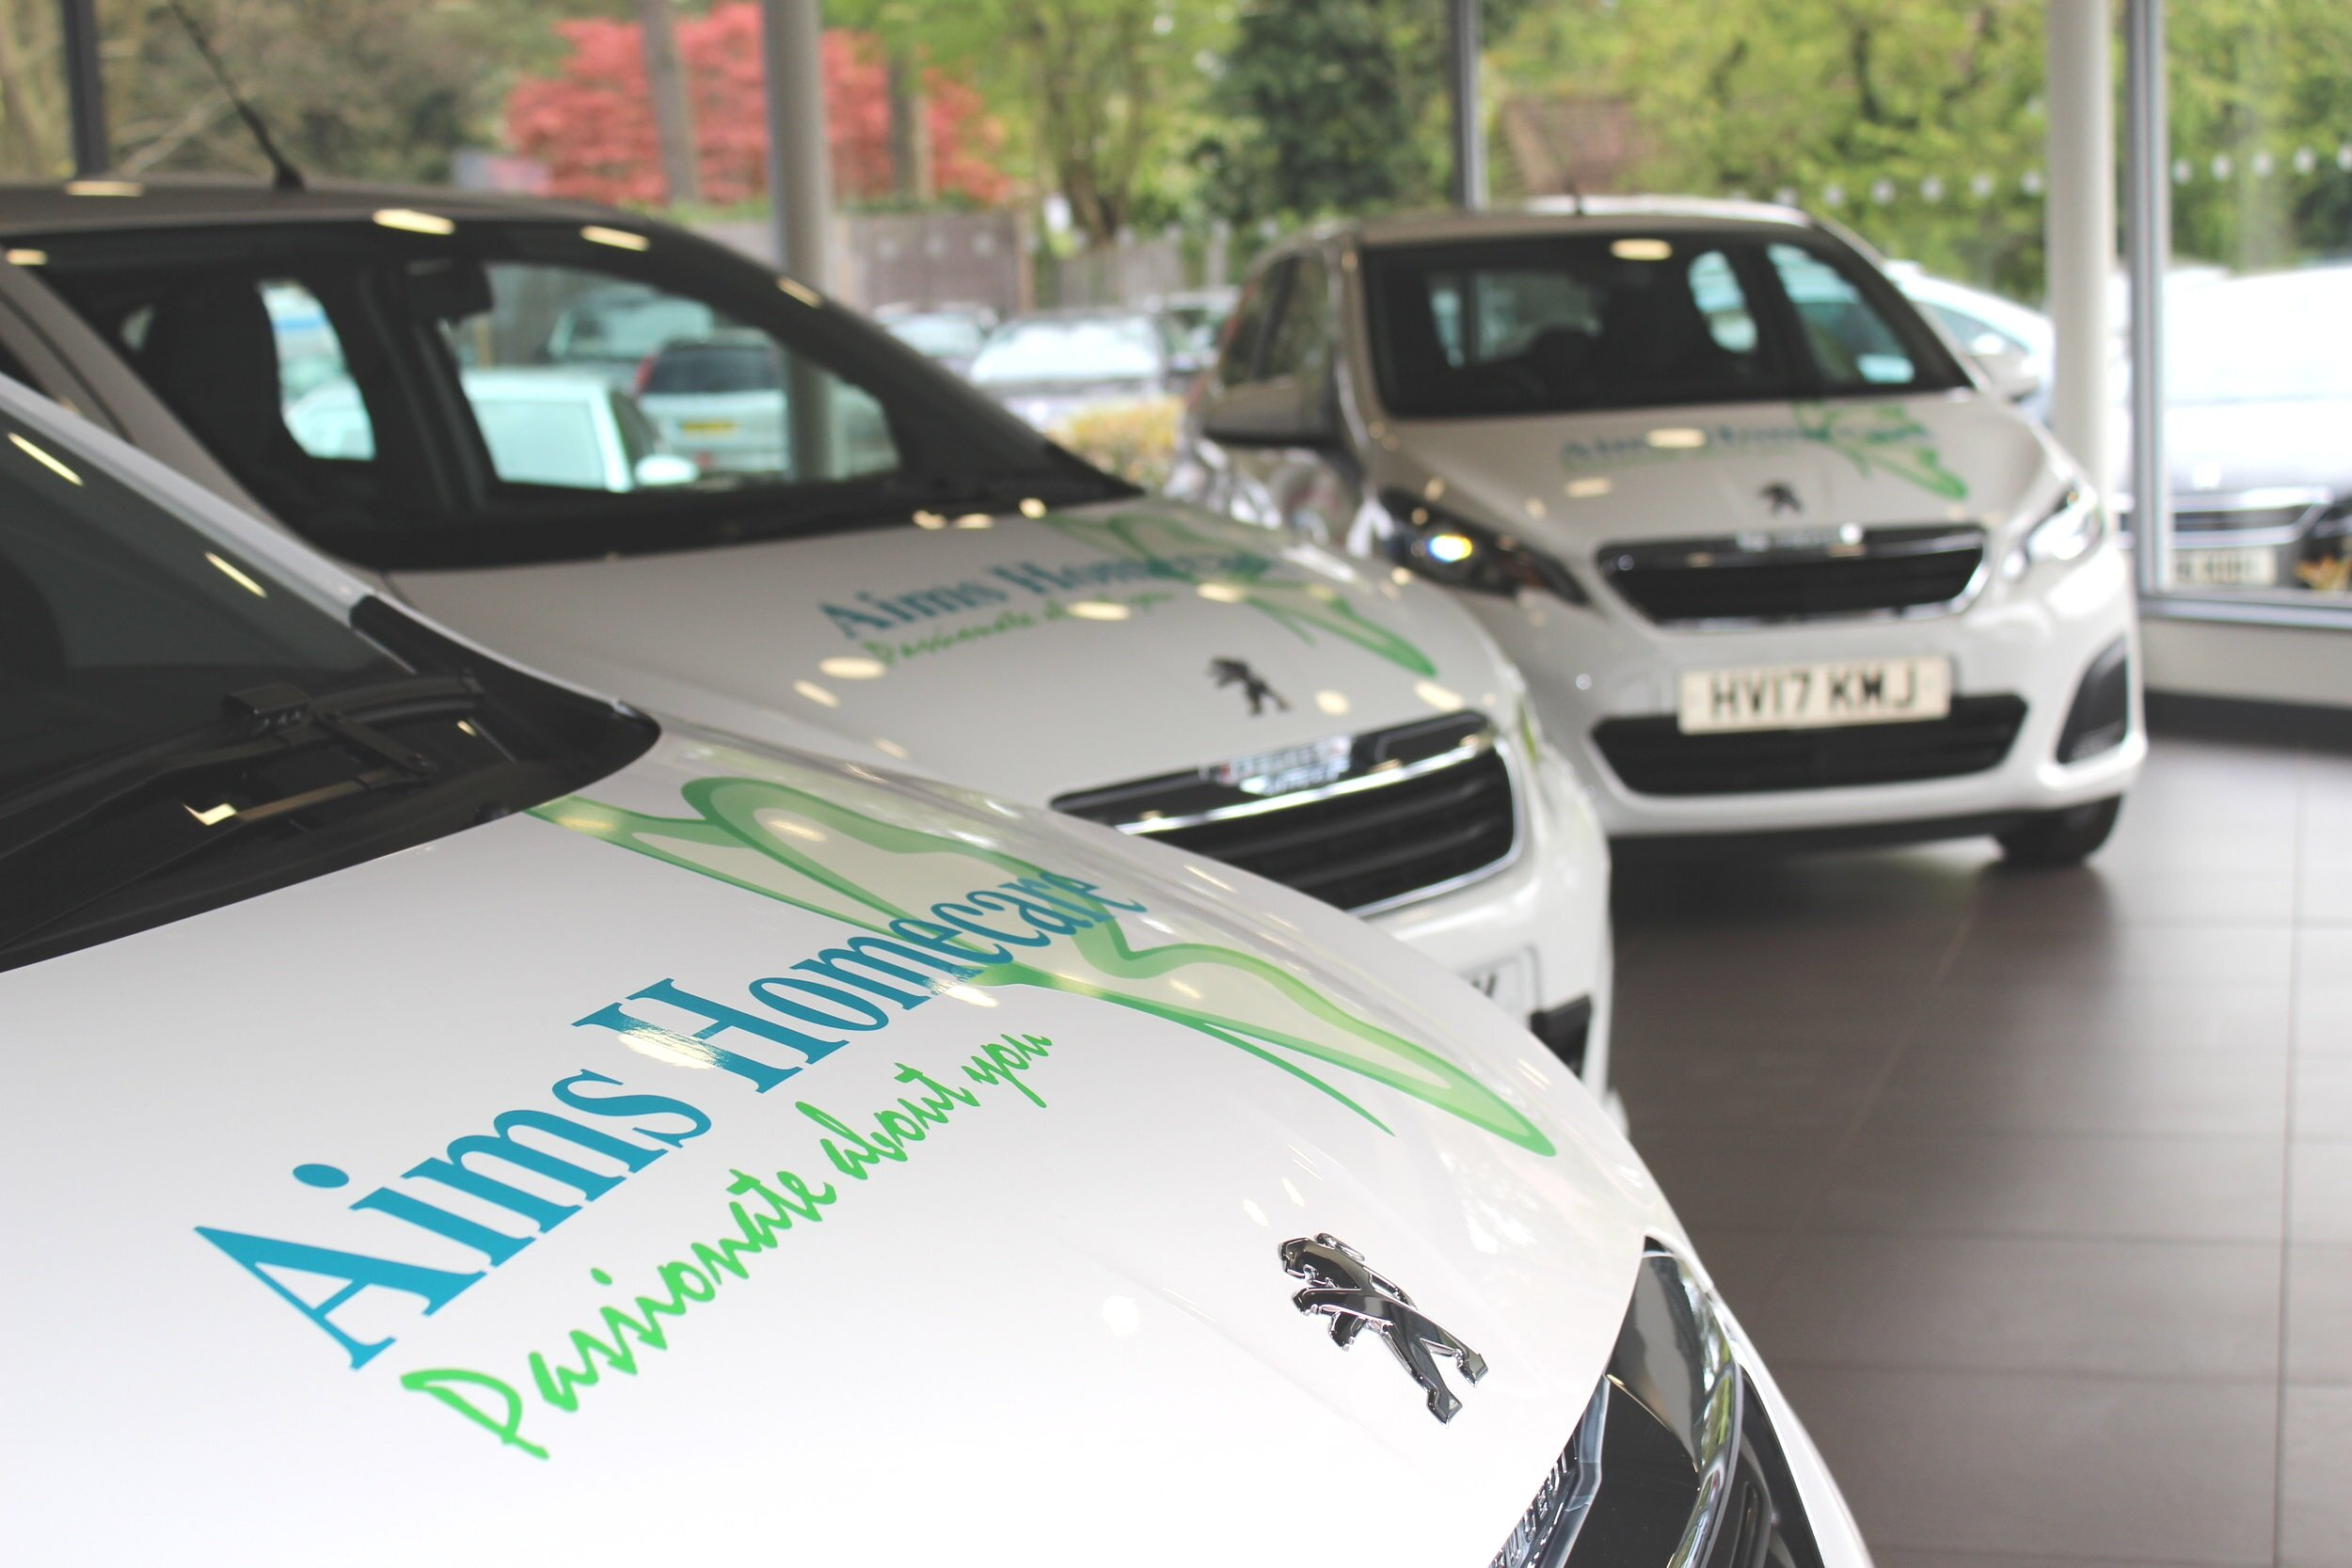 Our Fleet - Aims Homecare has it's a very large fleet of new vehicles which allows us to cover most of Surrey. All our cars are tracked remotely and fitted with video cameras, so we can see where our staff are at all times, and let you know if they are running late.